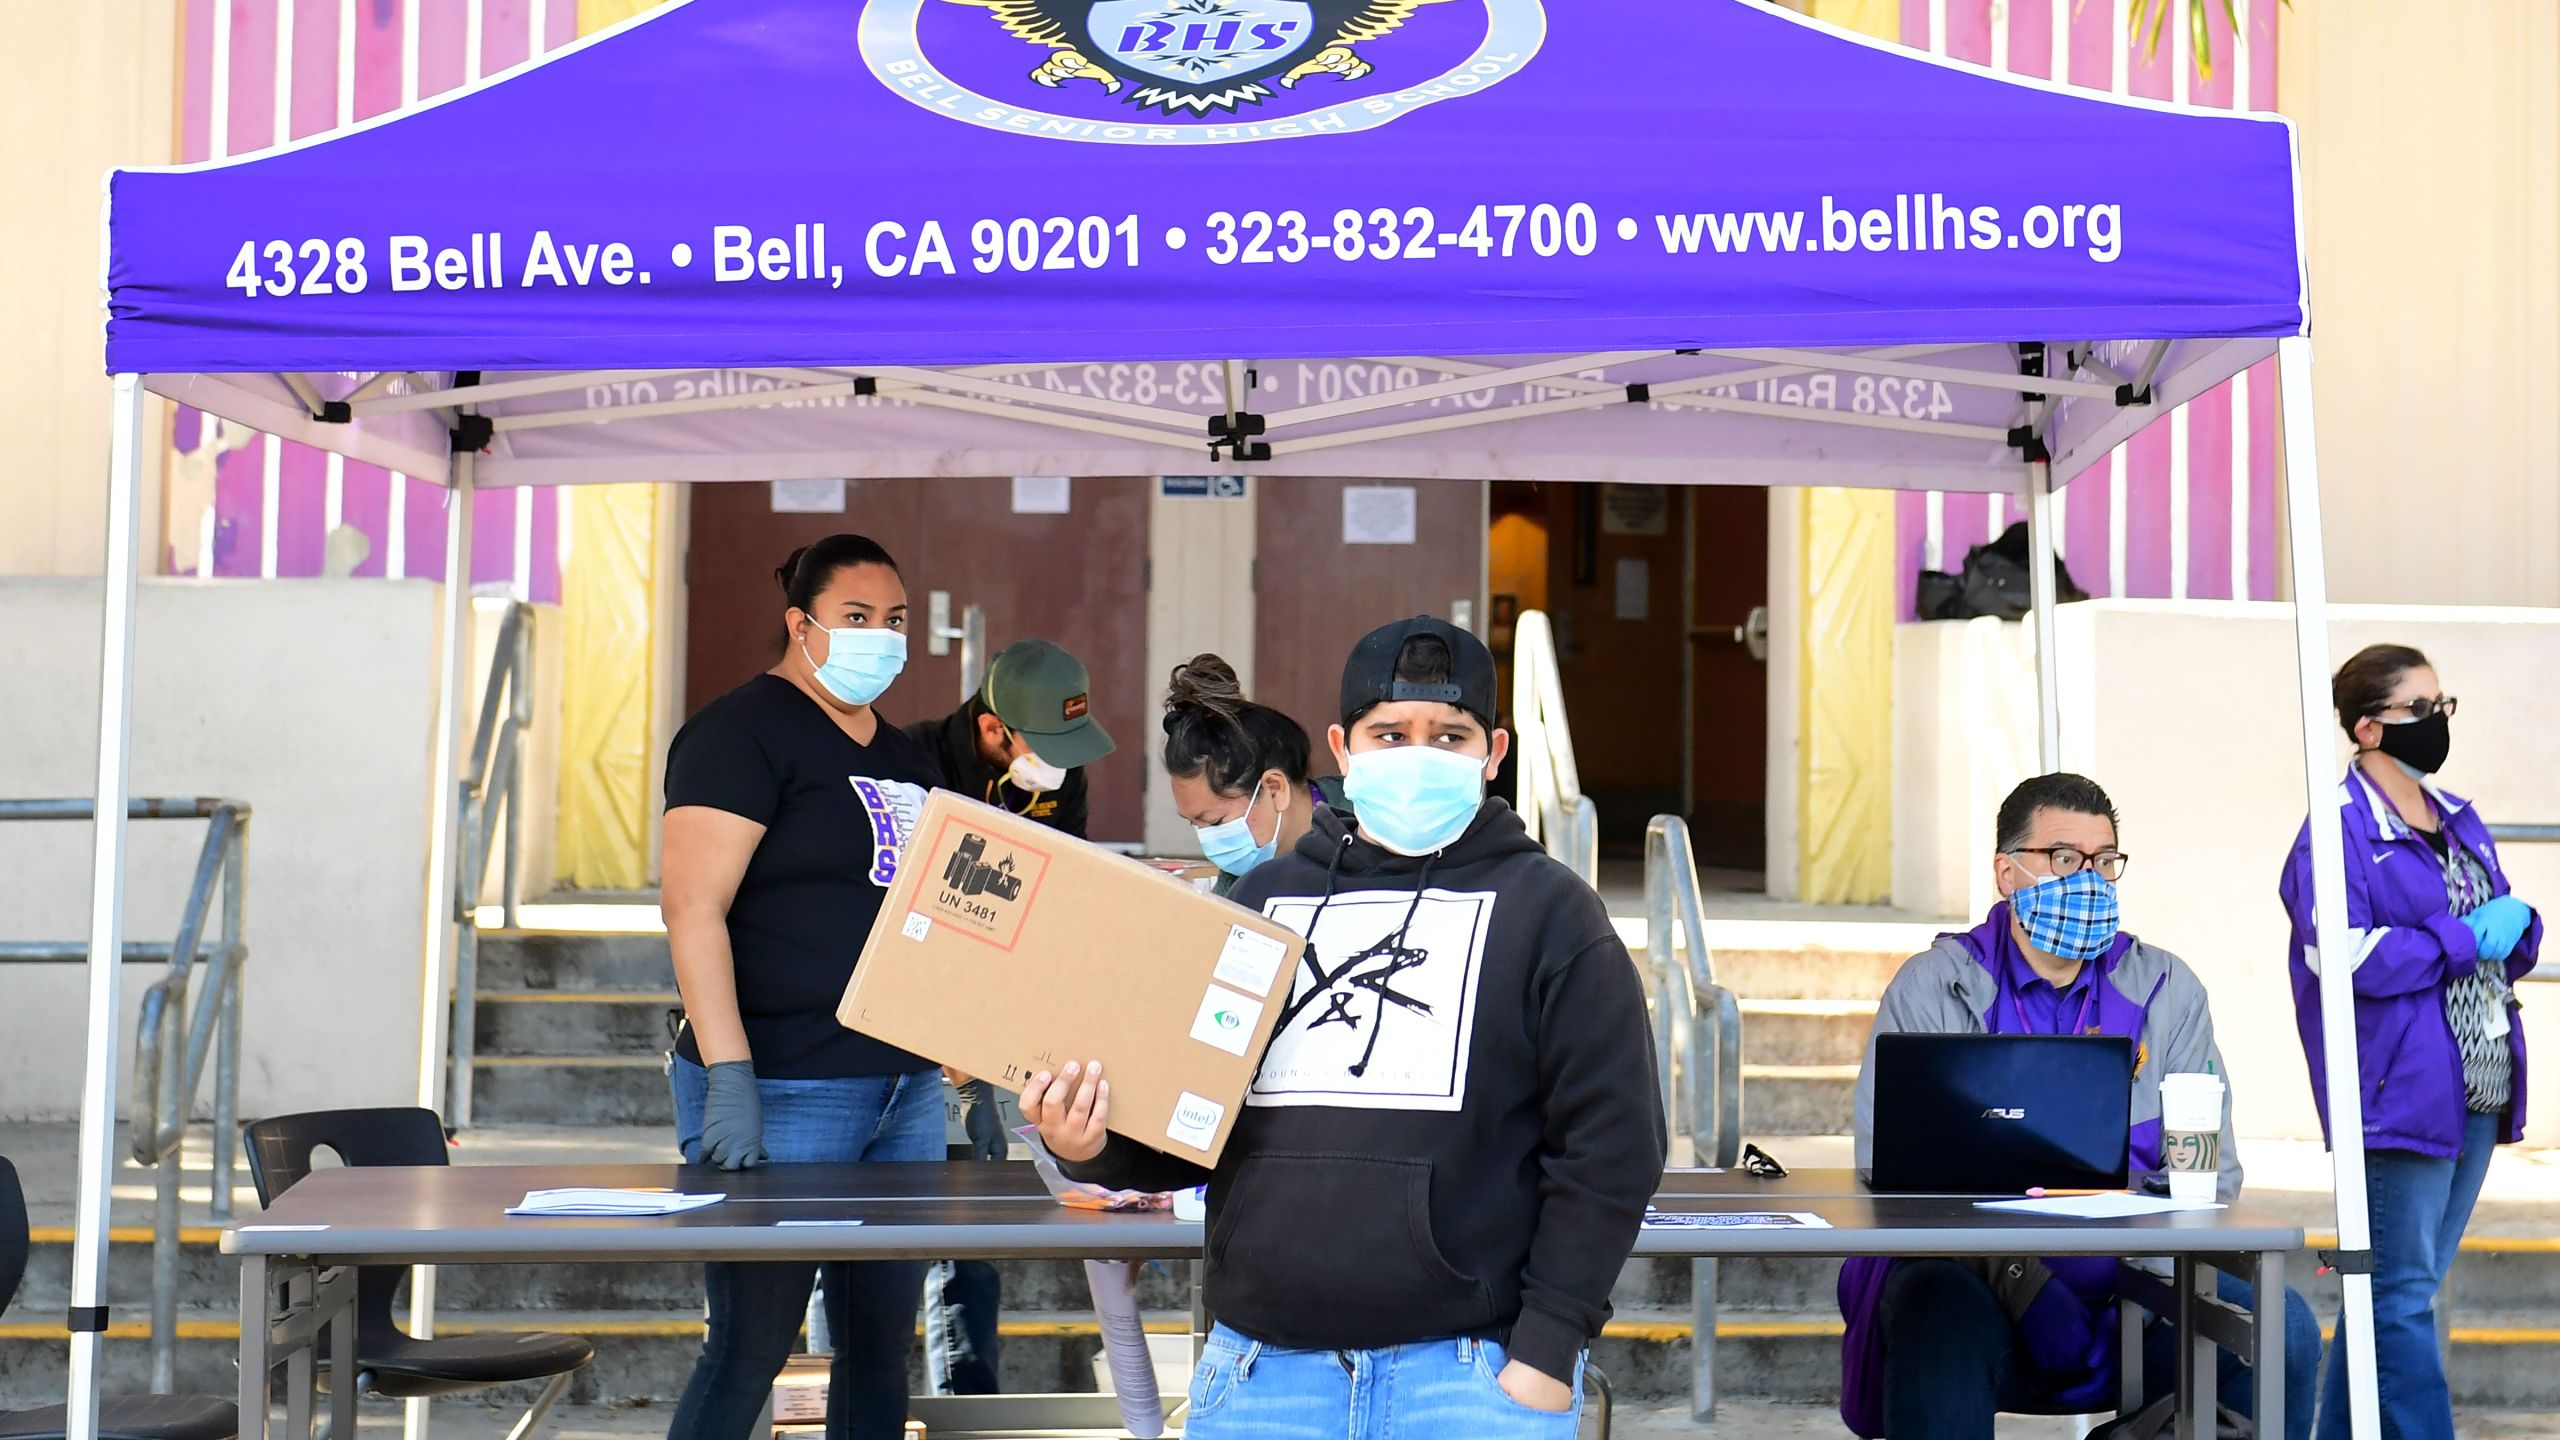 A student receives his laptop computer for remote learning which will be returned after the school year is over in front of Bell High School in Bell, California on April 15, 2020. (FREDERIC J. BROWN/AFP via Getty Images)